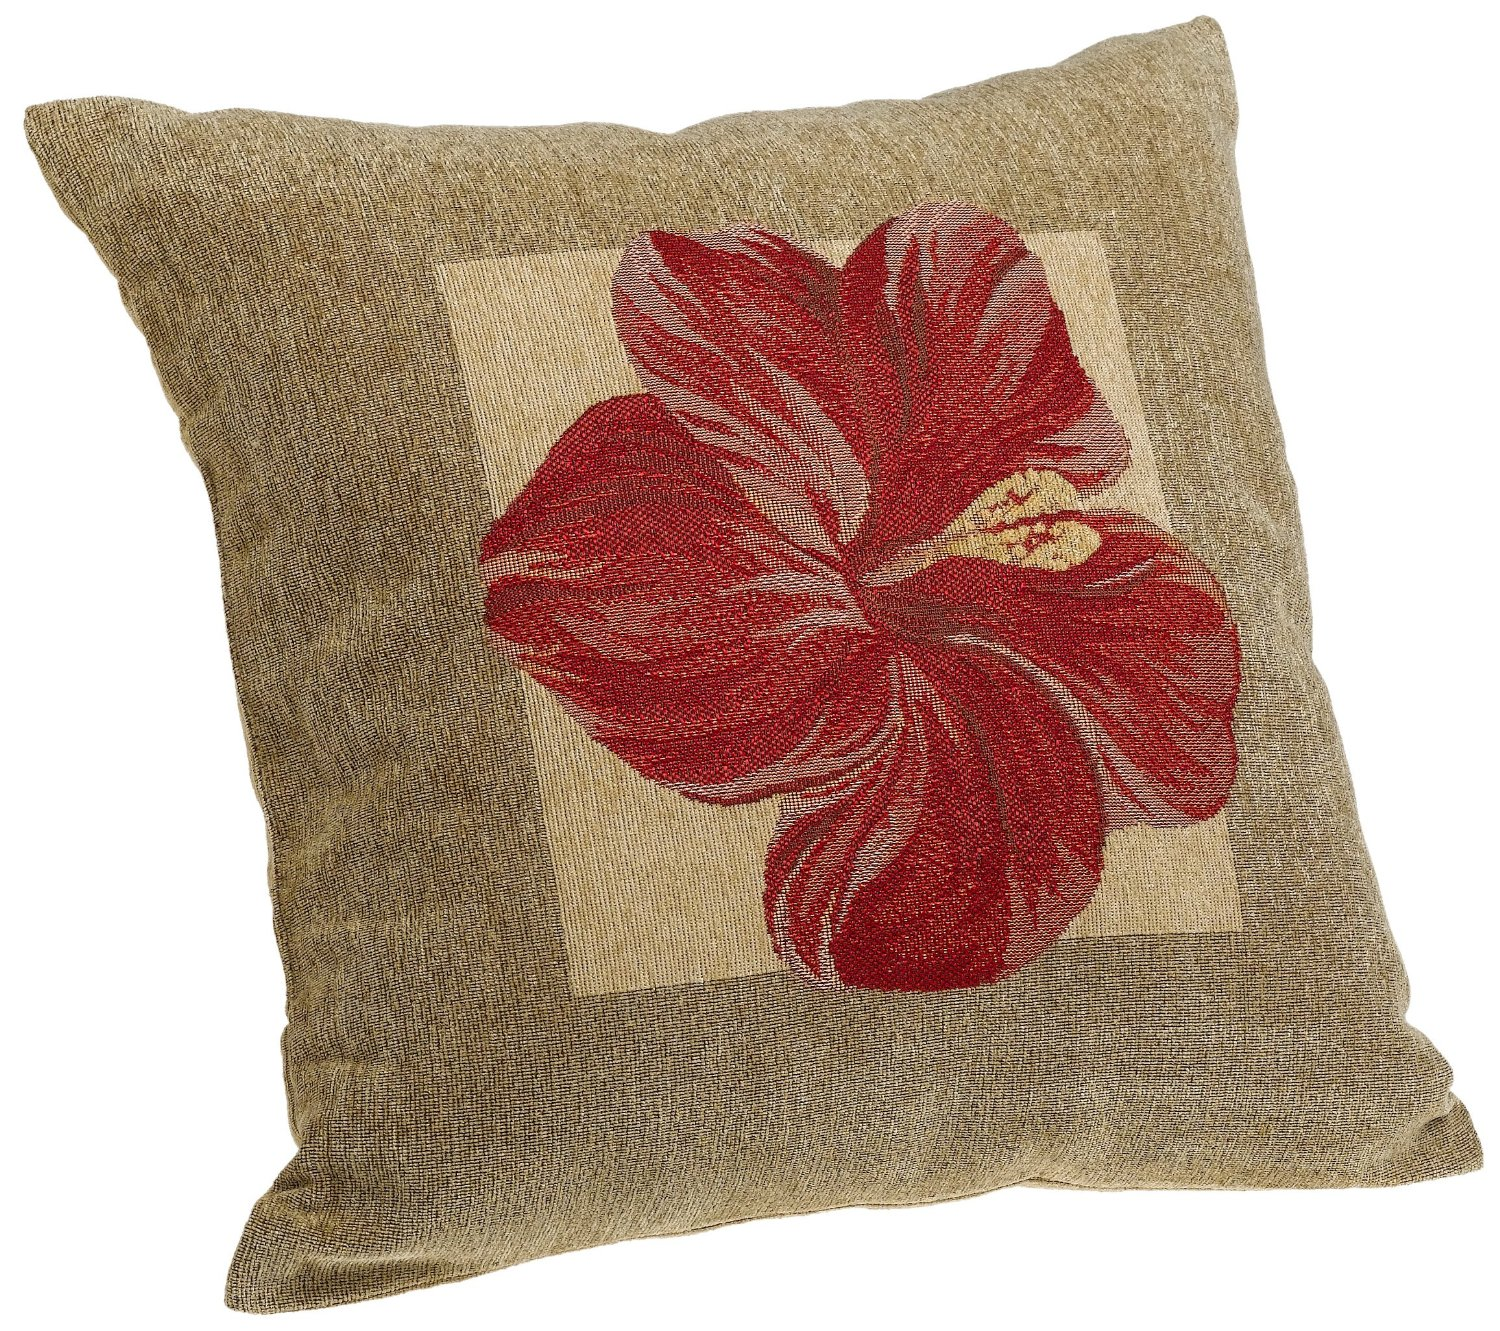 Decor Enchanting Decorative Pillow Covers For Home